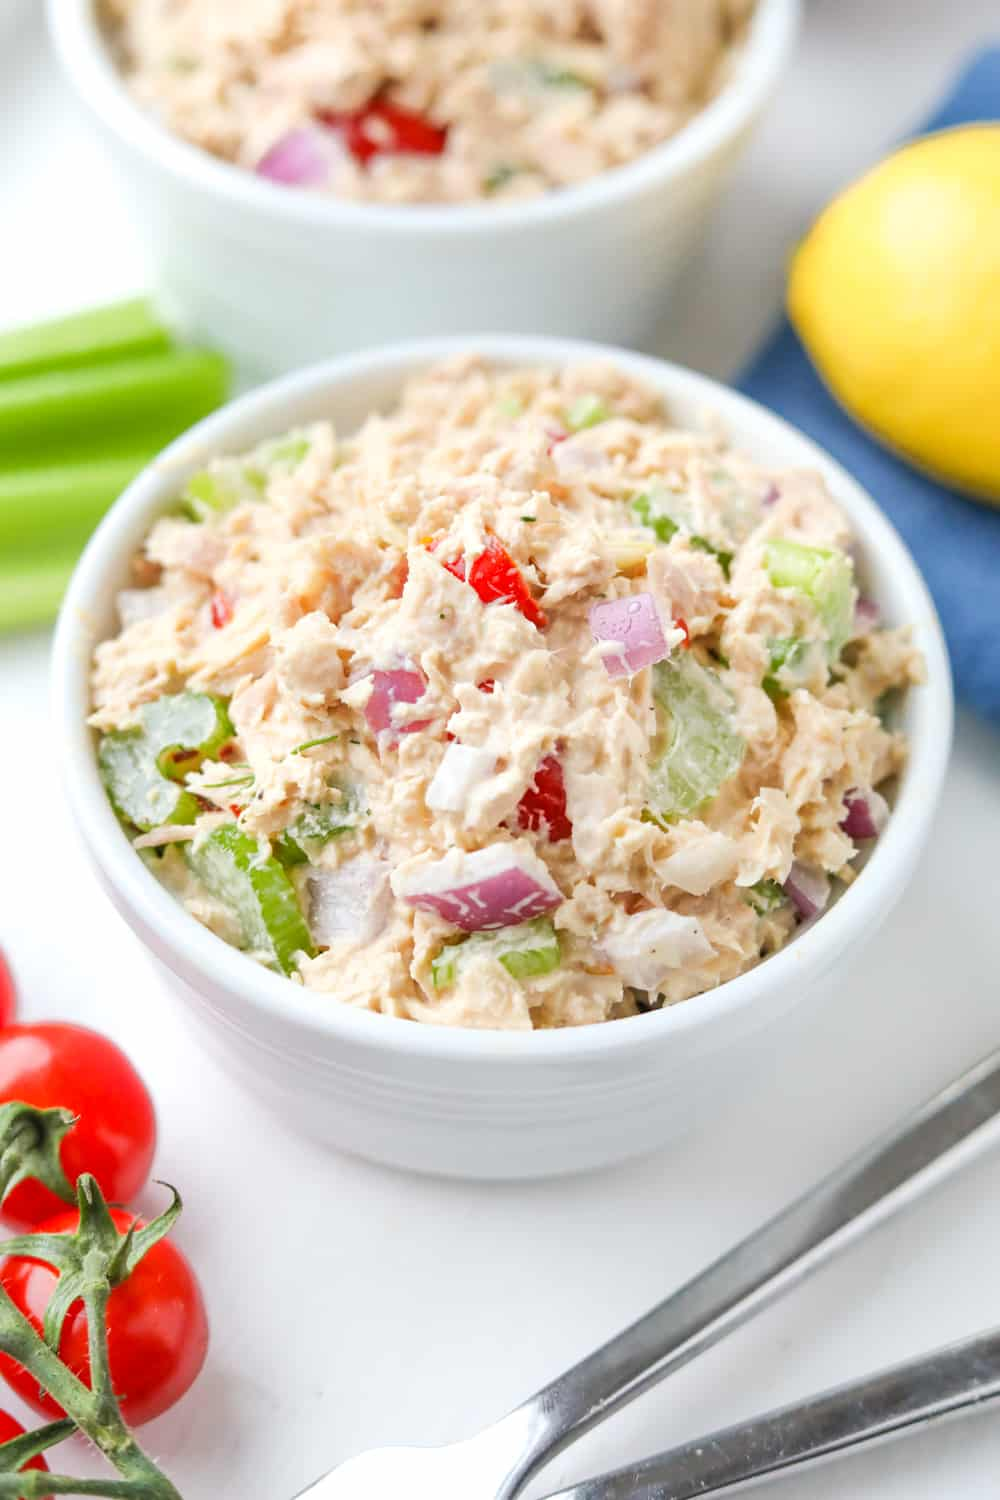 Keto Tuna Salad The Best Easy Low Carb Tuna Salad Recipe For Keto